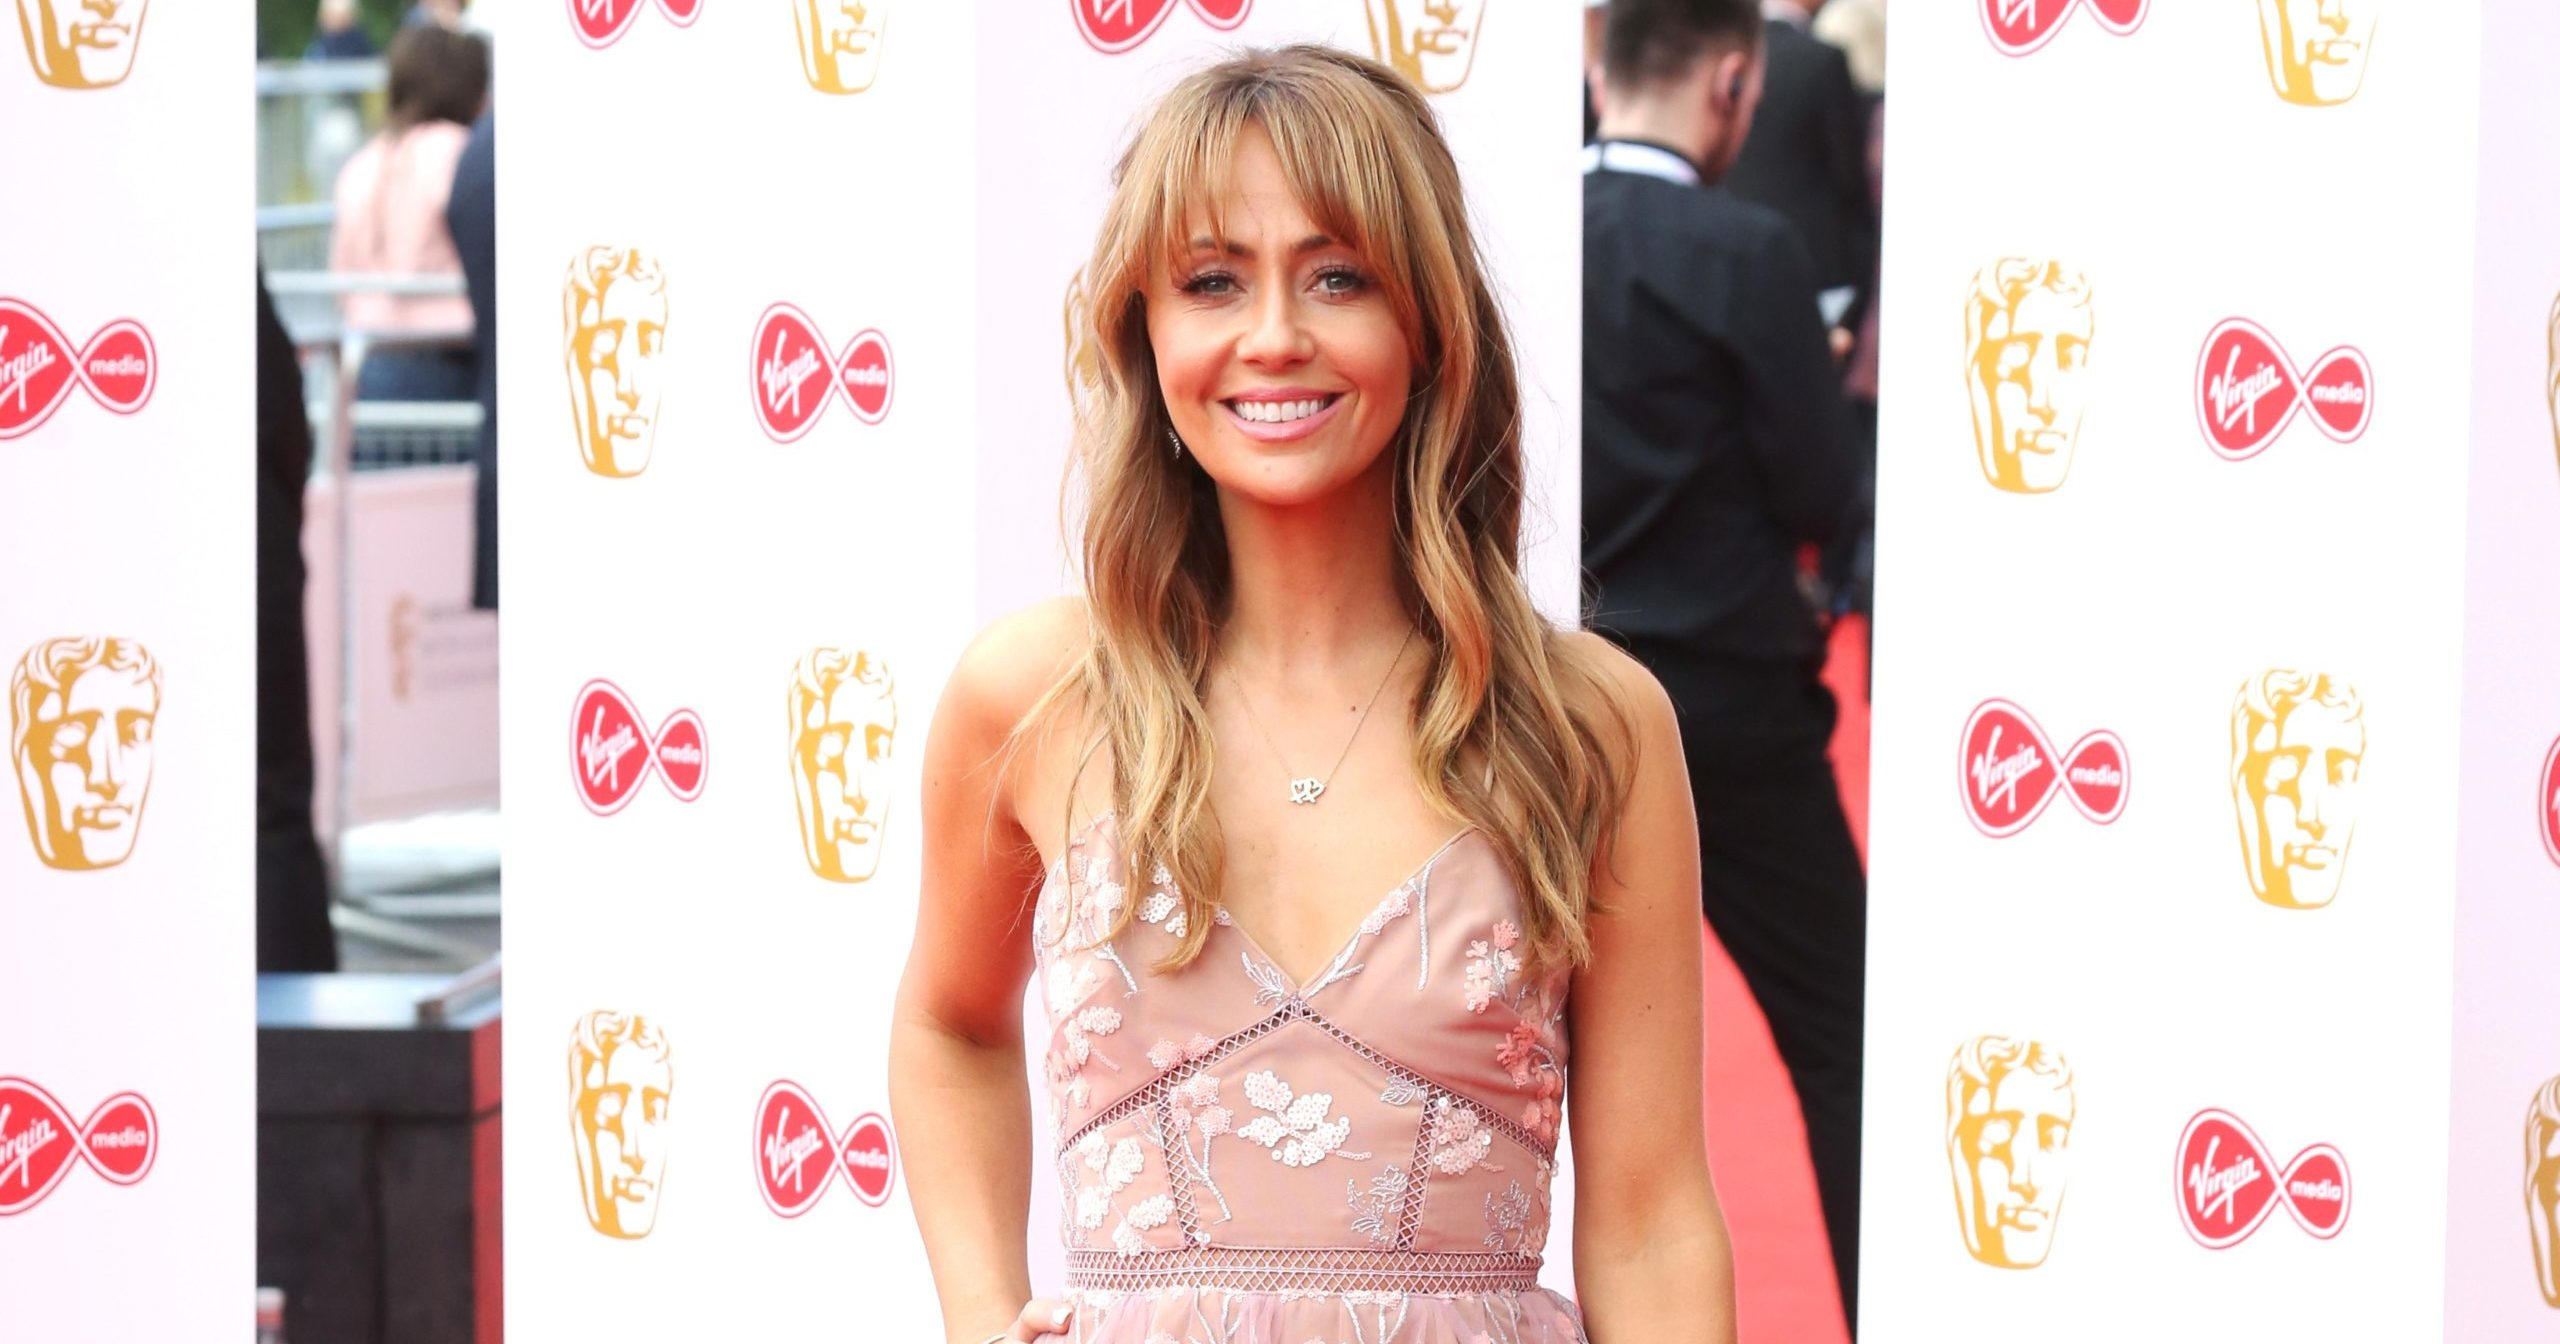 Samia Longchambon fans say she looks 'much younger' as she returns to Coronation Street